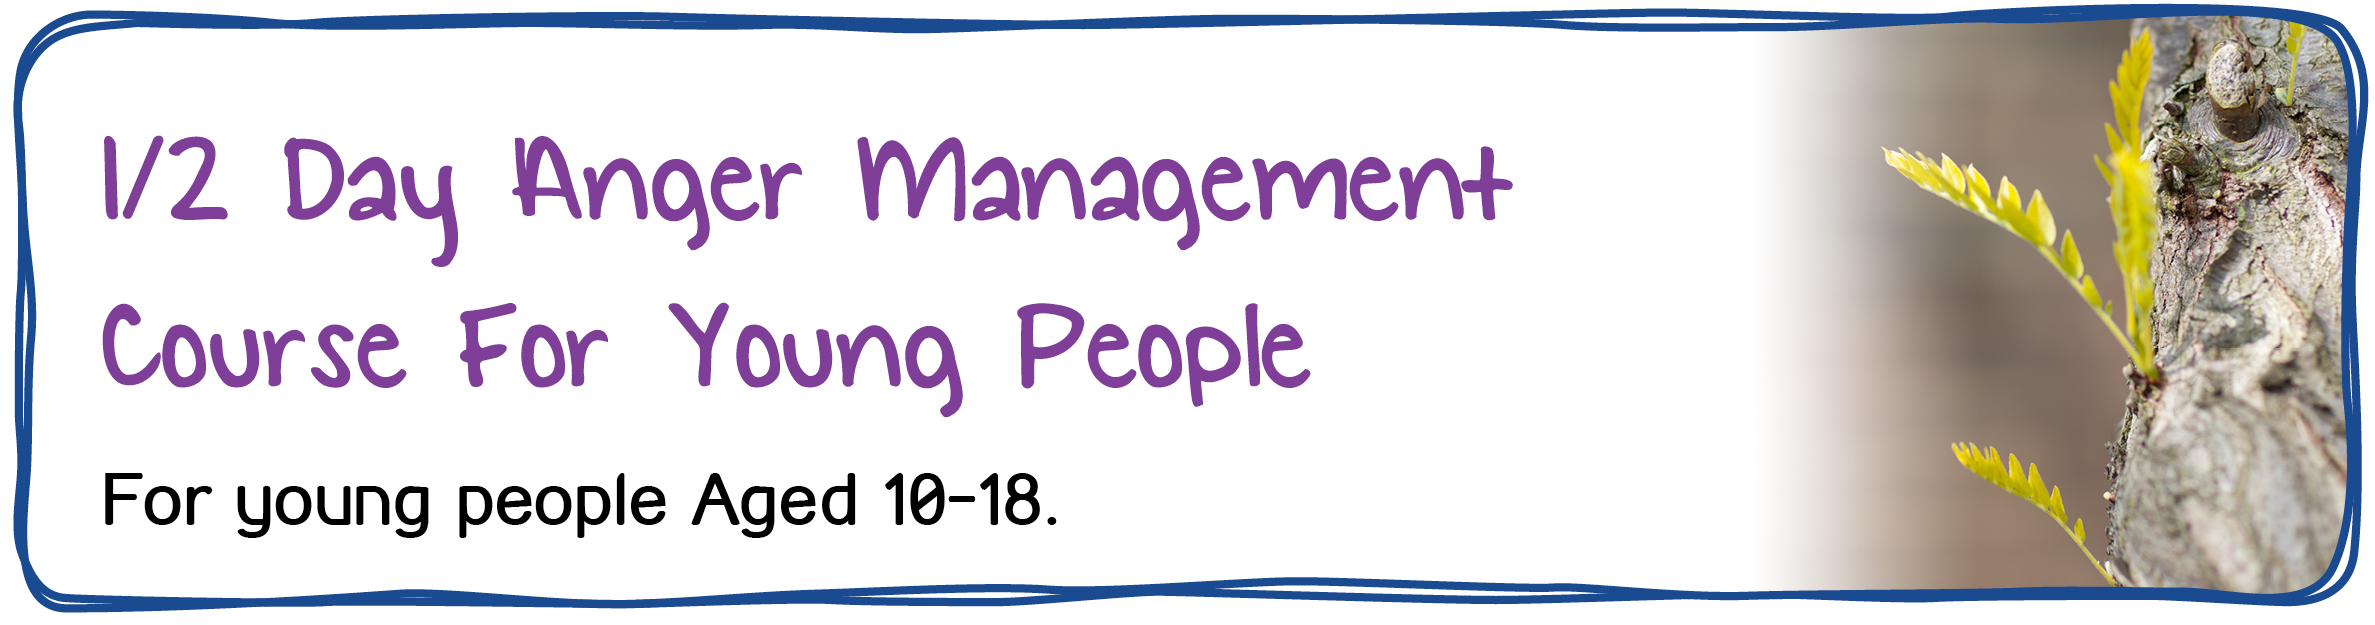 1/2 Day Youth Anger Management Course - For Young People Aged 10 - 18.